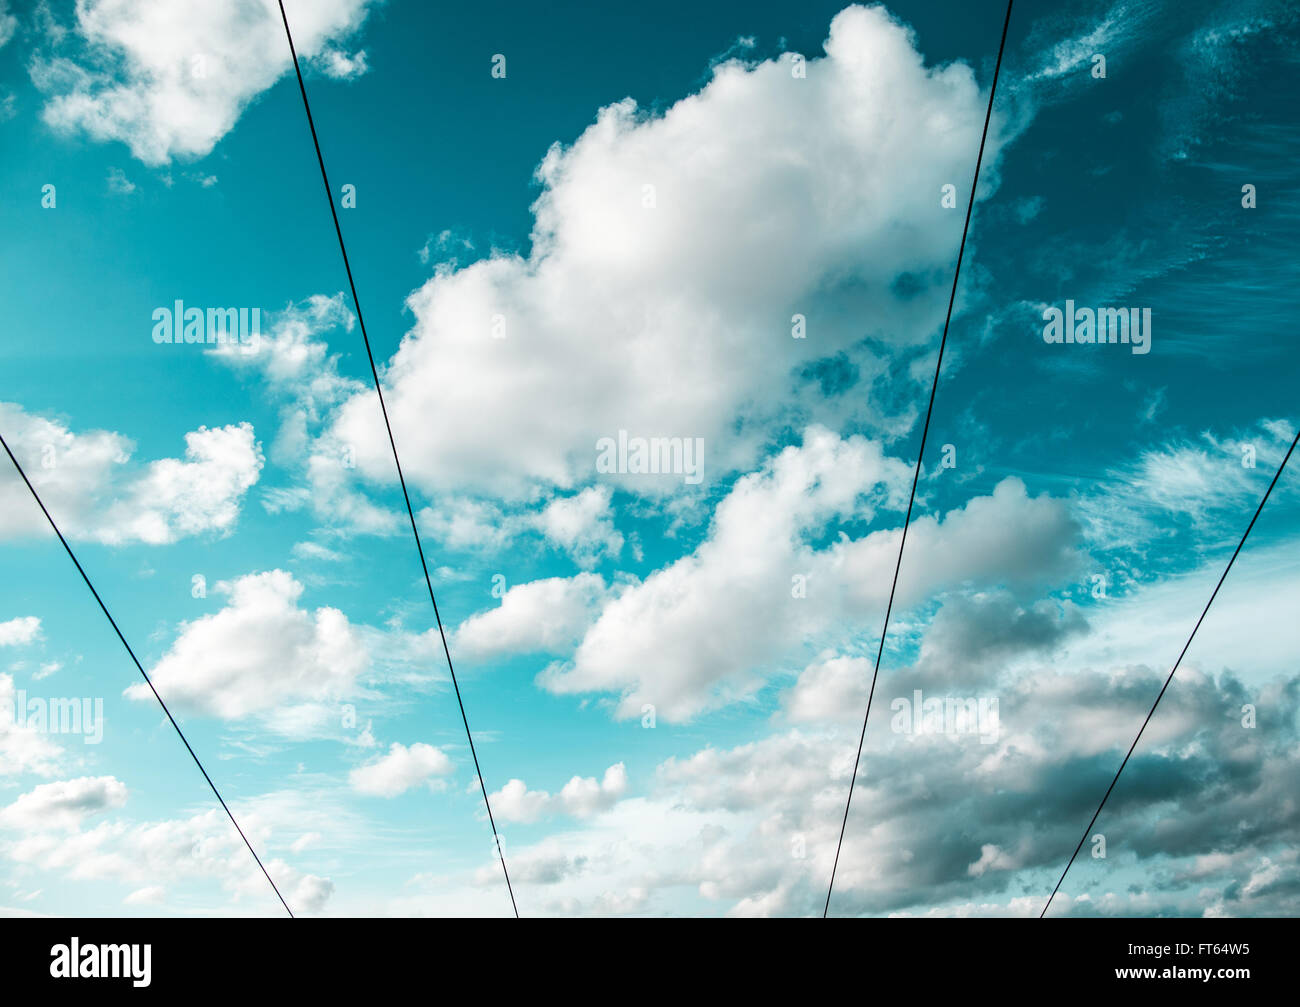 Low angle view of ski-lift cables against cloudy sky - Stock Image